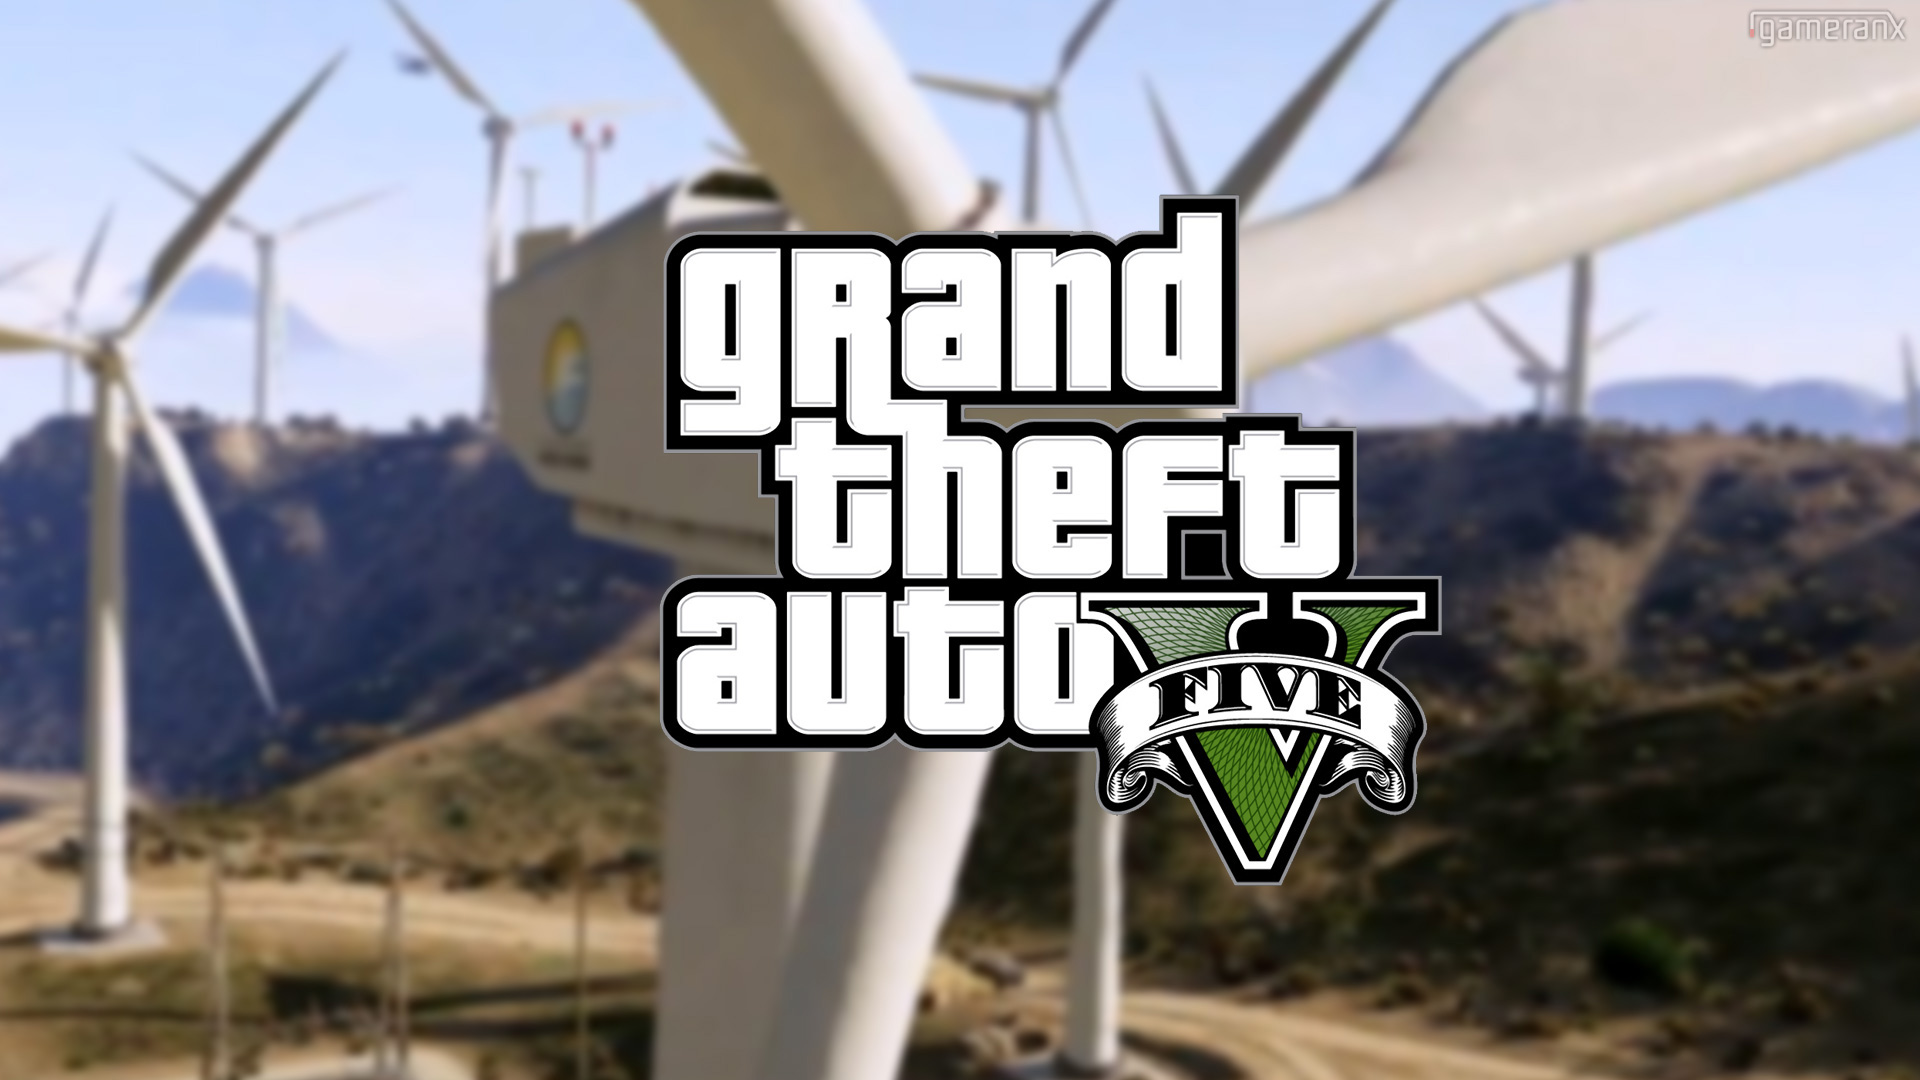 GTA 5 Wallpapers in HD Page 3 1920x1080